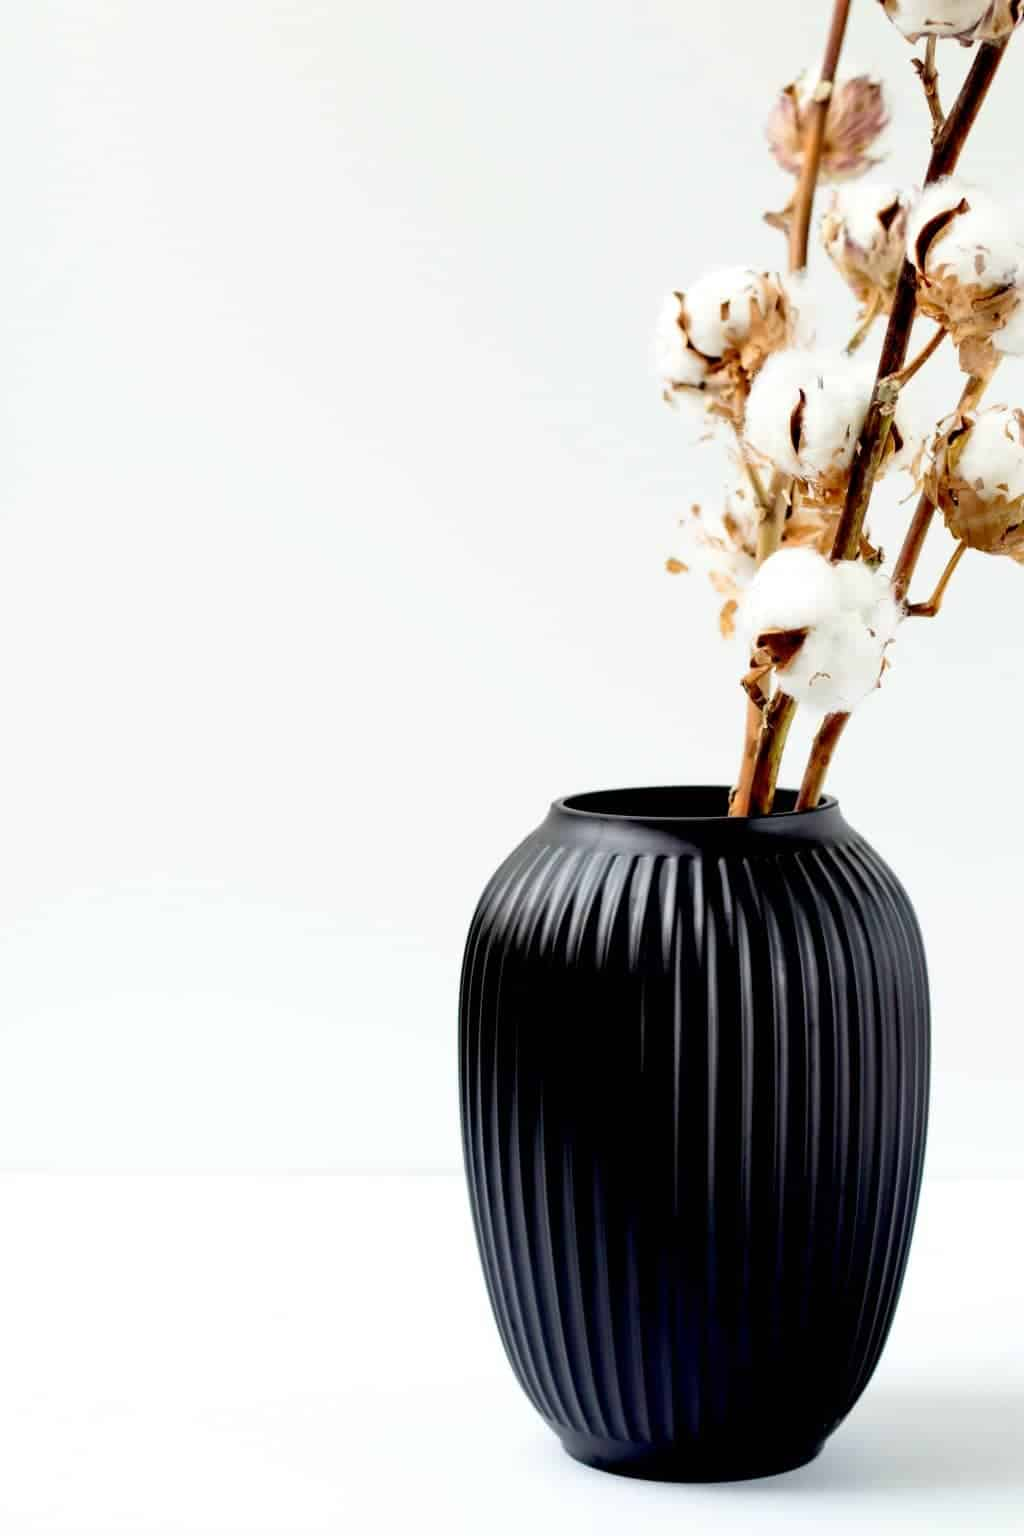 A minimalist black vase with cotton inside of it